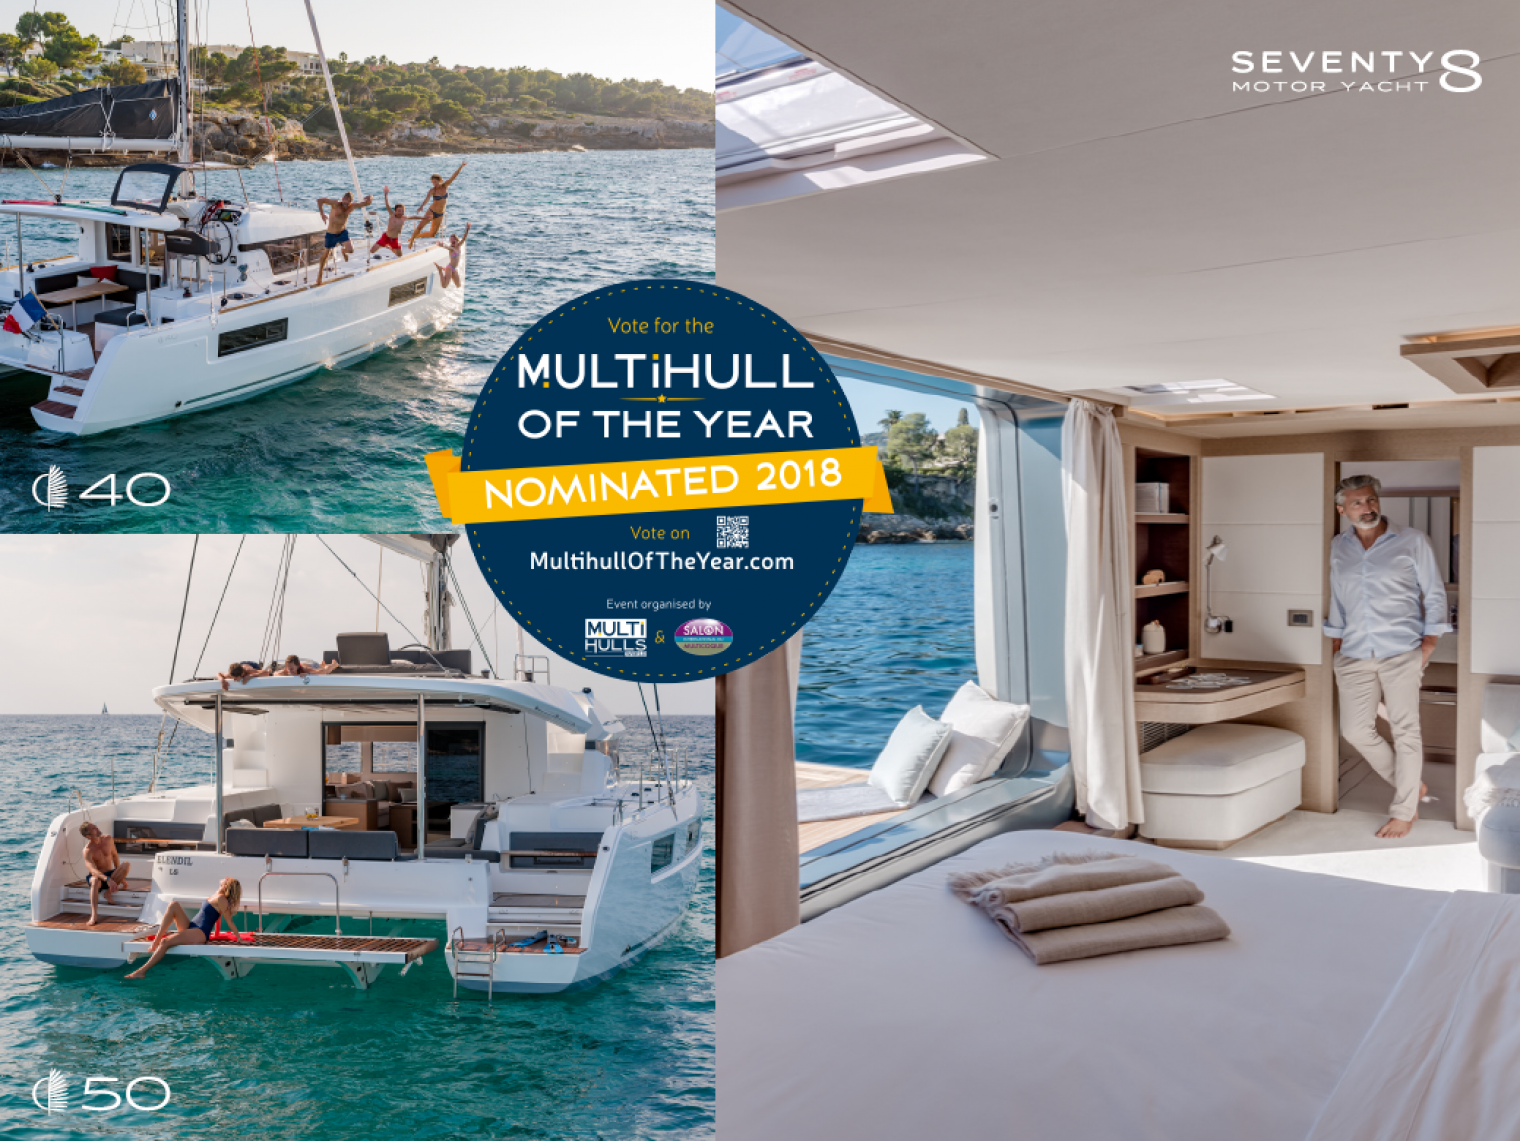 Vote for your favorite multihull